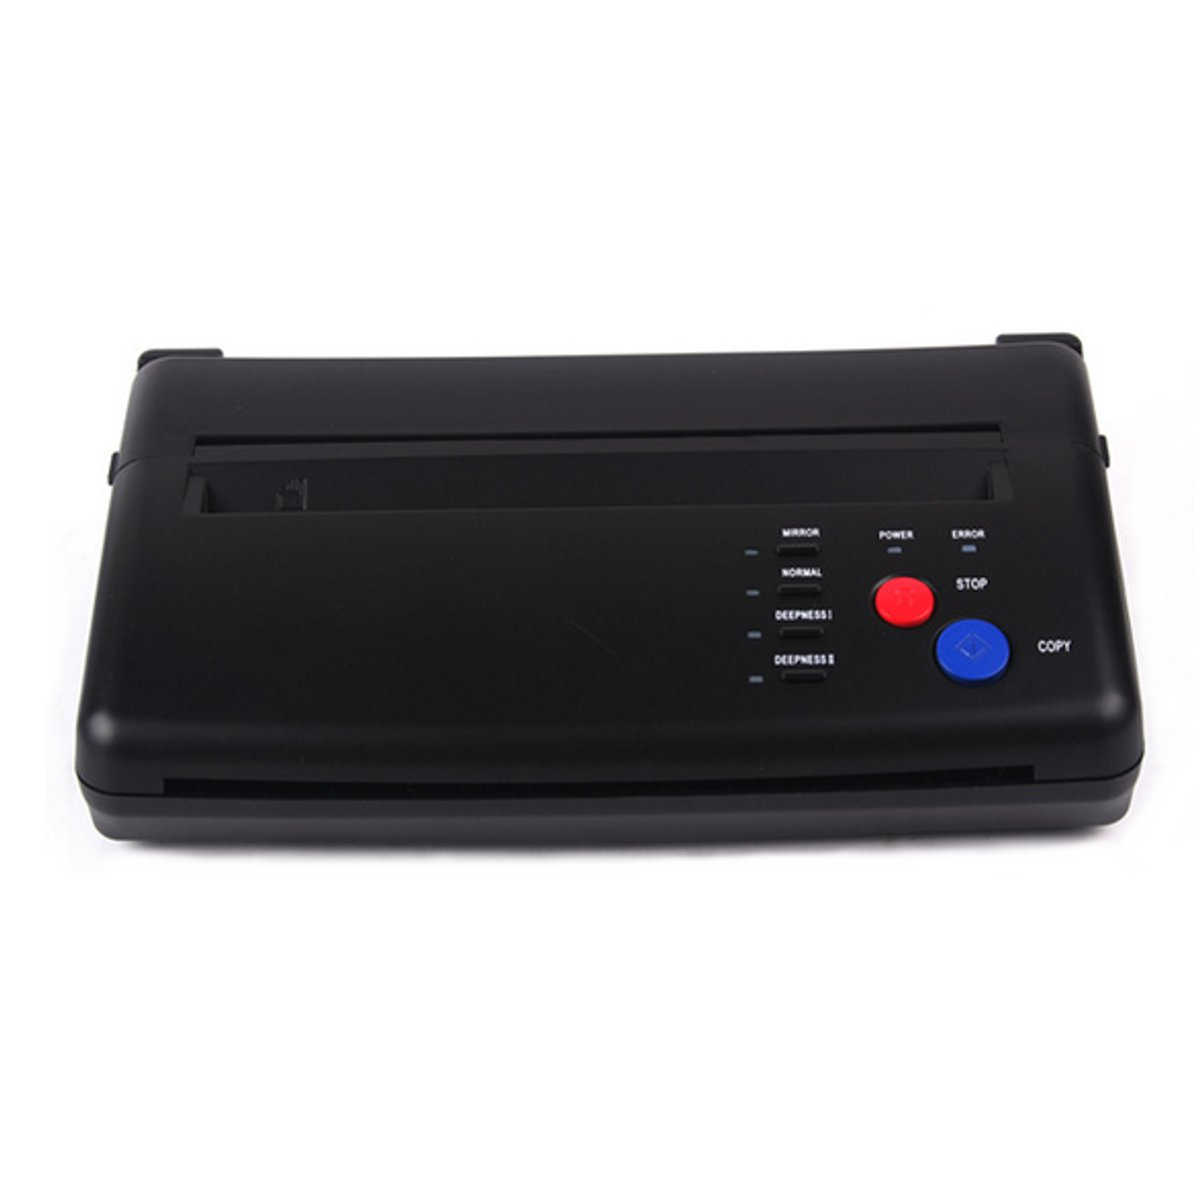 100-240V Tattoo Thermal Stencil Maker Copier Transfer Printer Flash TattooTransfer Copier Machine